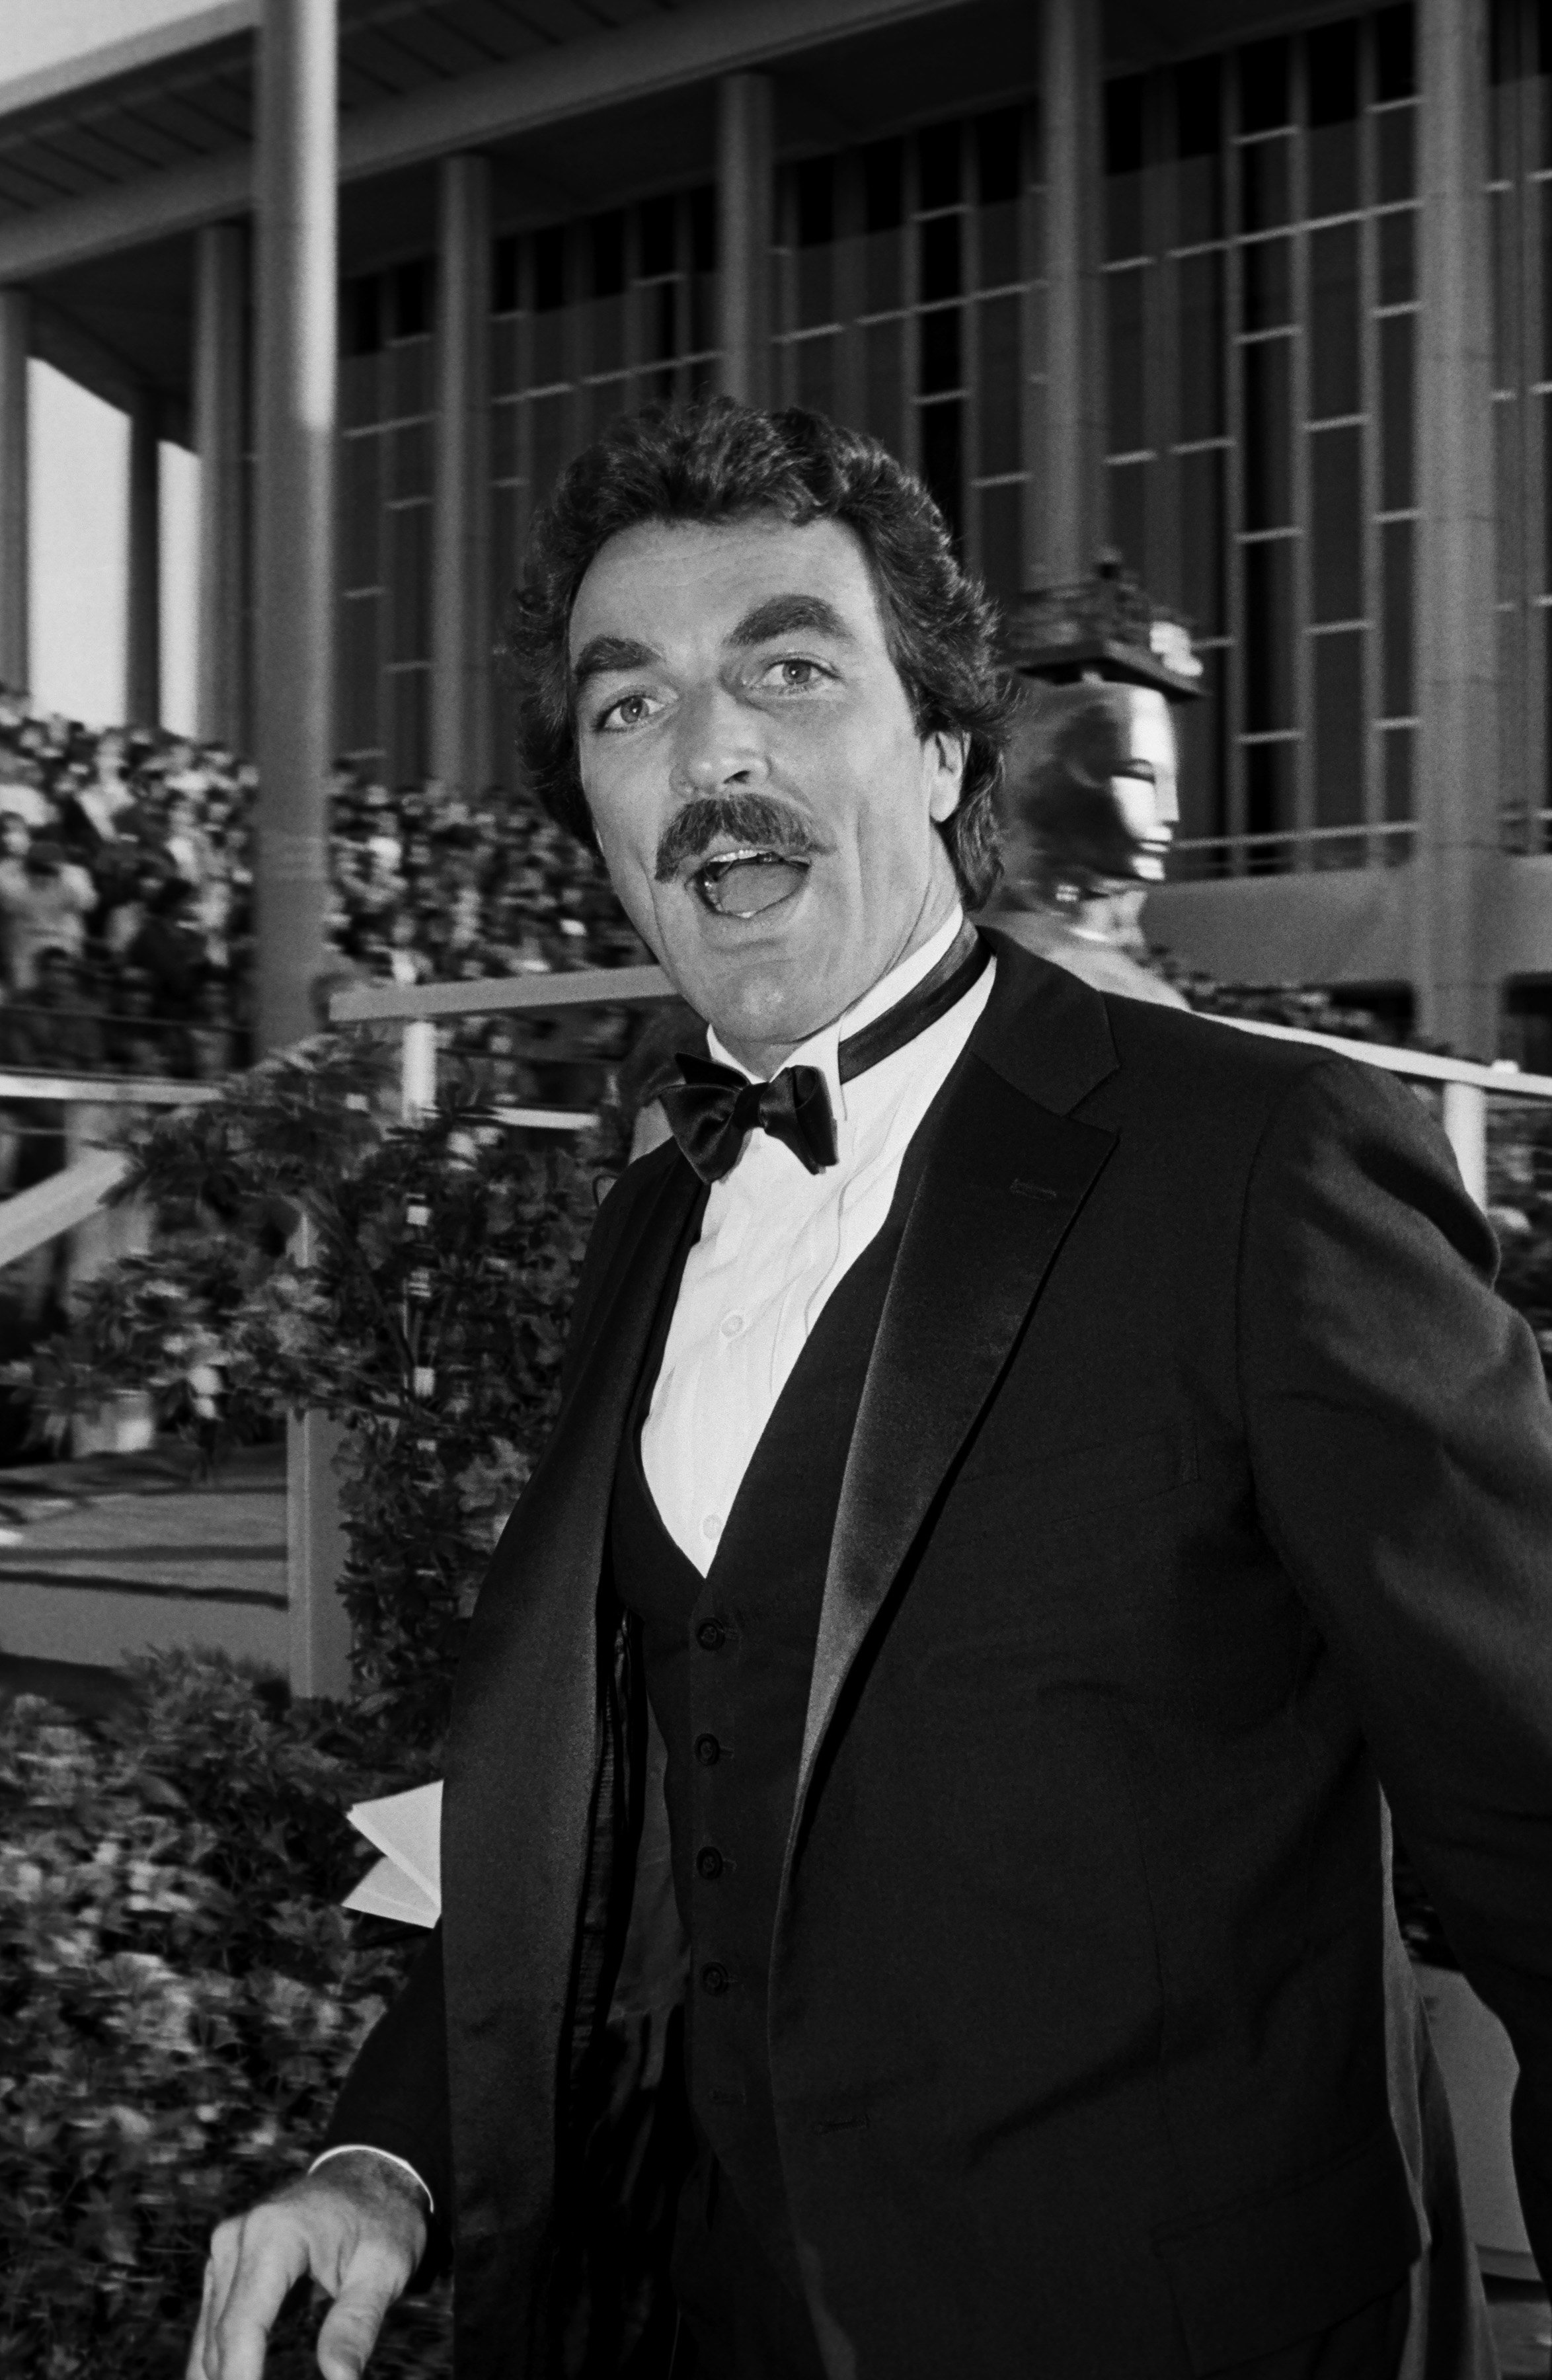 Tom Selleck at the  Academy Awards presentation in 1983 | Photo: GettyImages